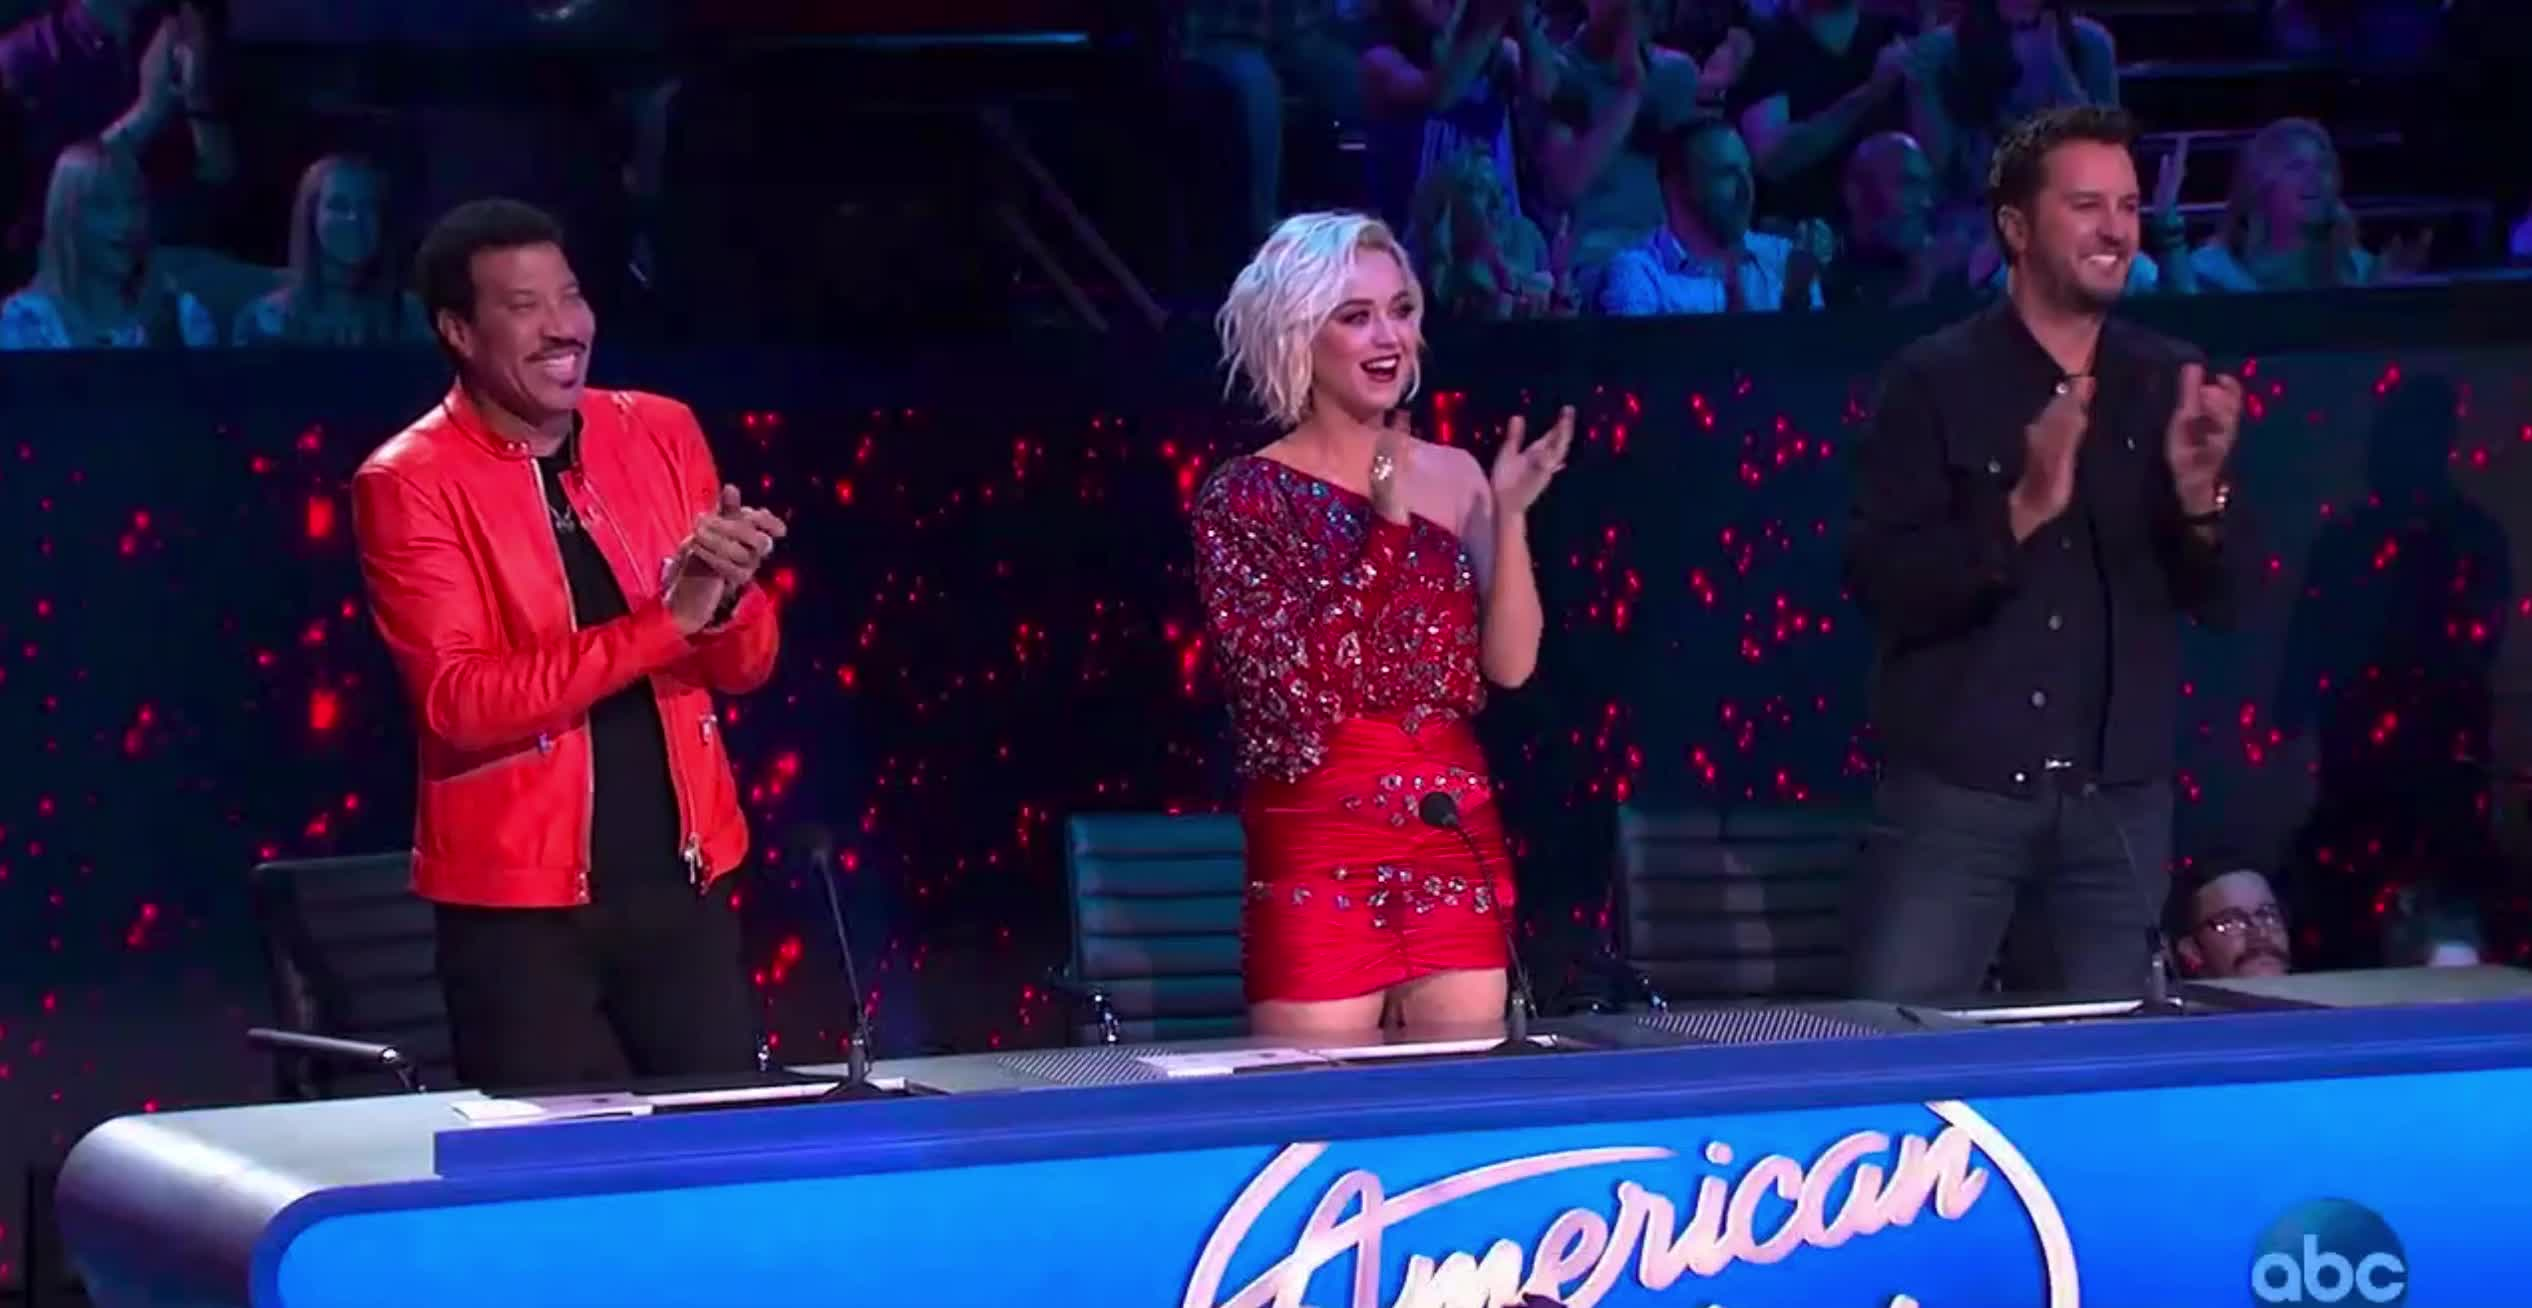 american idol, american idol season 17, americanidol, applause, clap, clapping, katy perry, lionel richie, luke bryan, ryan seacrest, season 17, American Idol The Judges Clapping GIFs